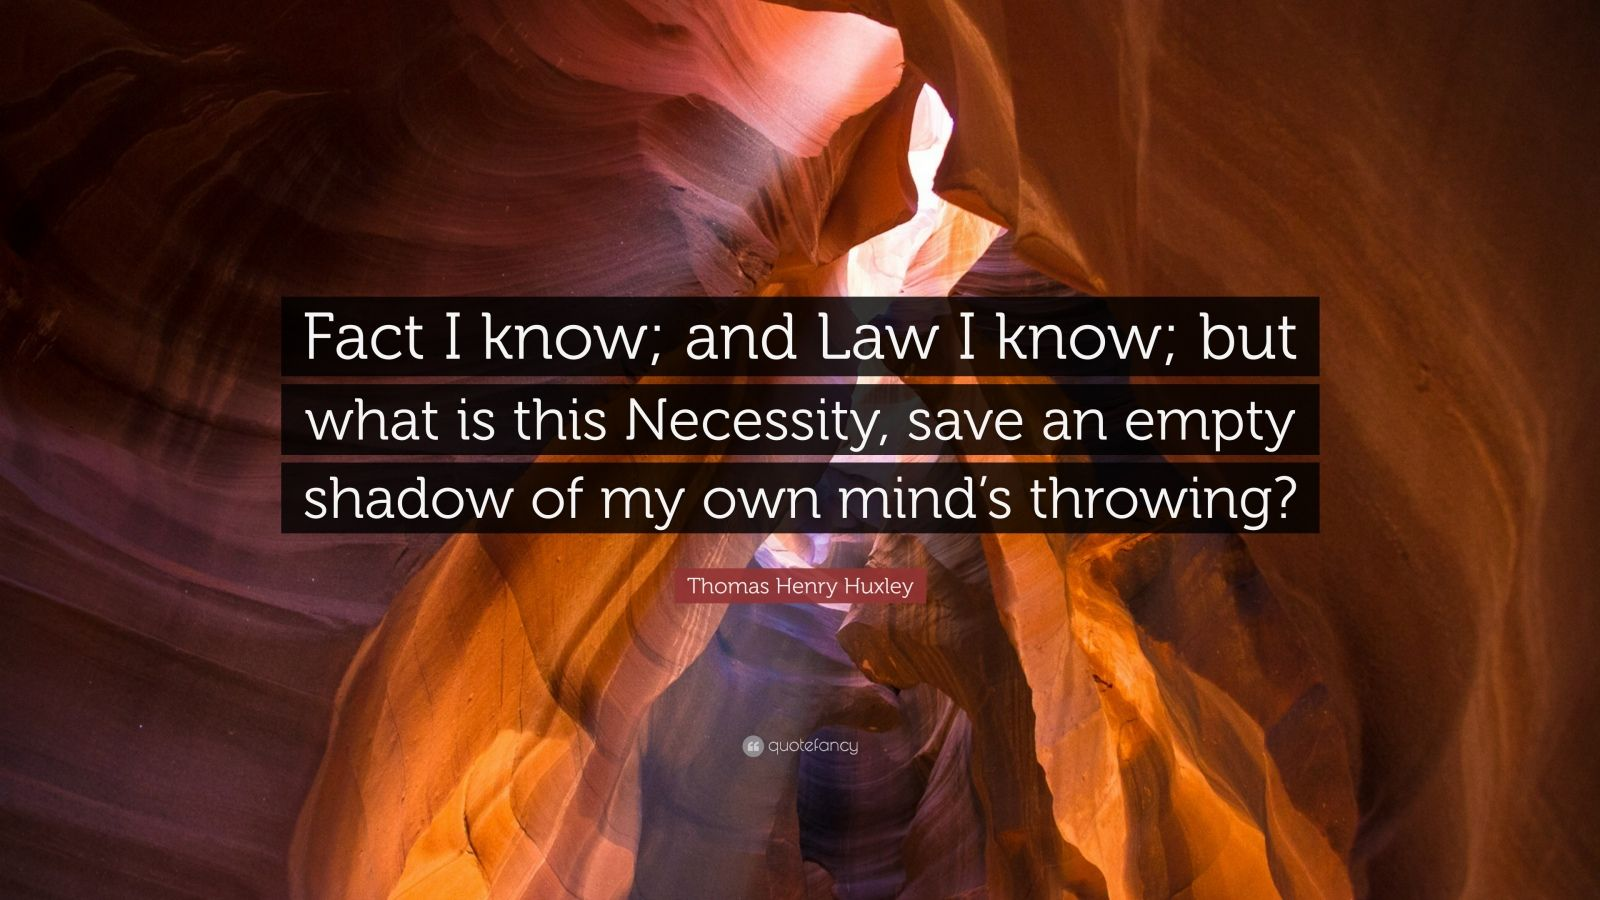 """Thomas Henry Huxley Quote: """"Fact I know; and Law I know; but what is this Necessity, save an empty shadow of my own mind's throwing?"""""""